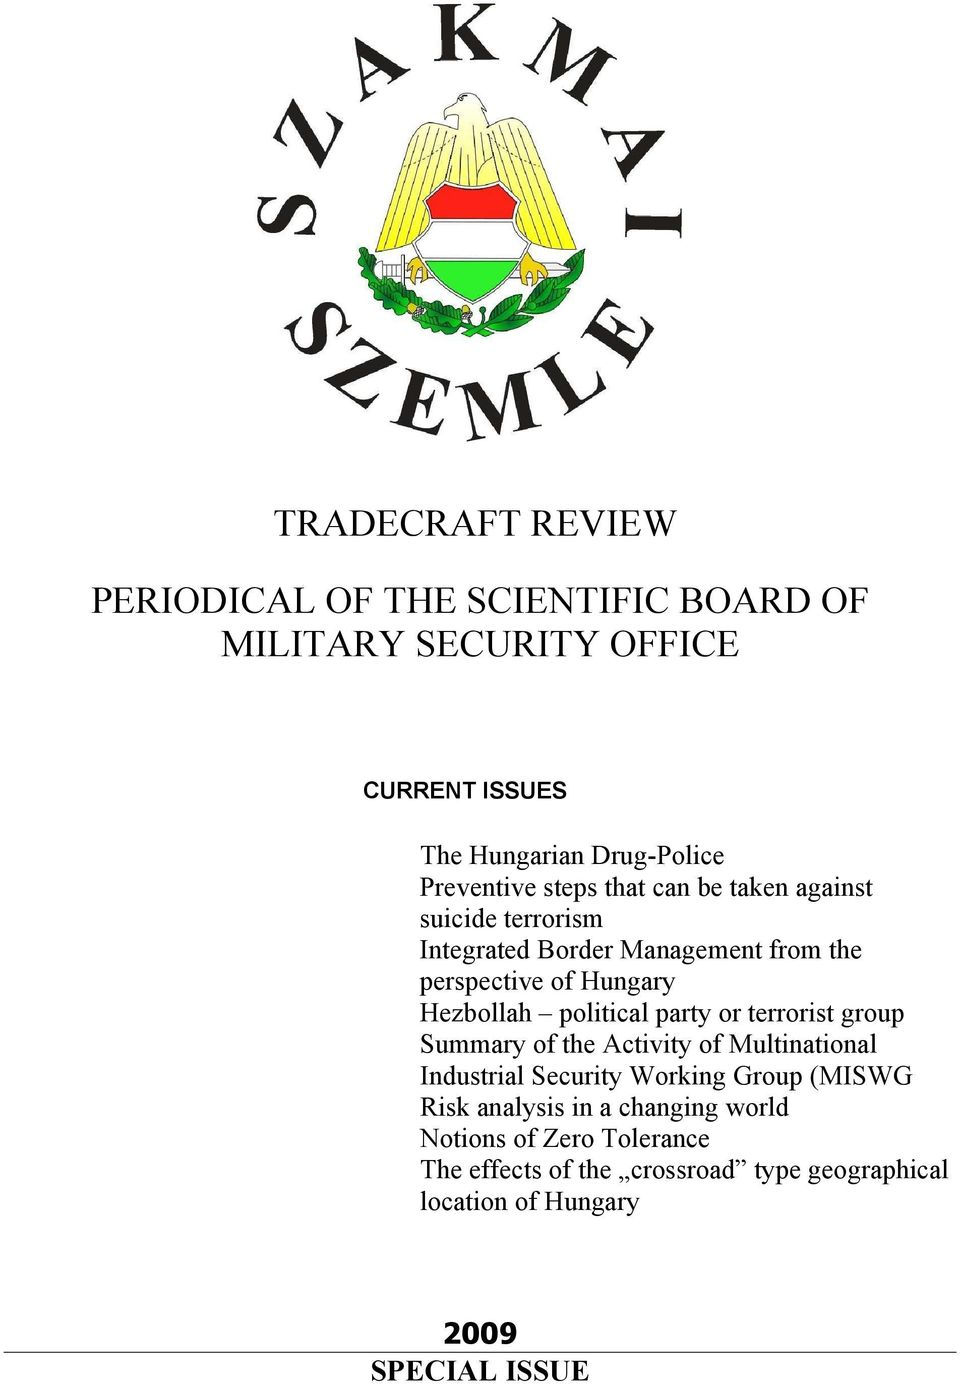 Hezbollah political party or terrorist group Summary of the Activity of Multinational Industrial Security Working Group (MISWG